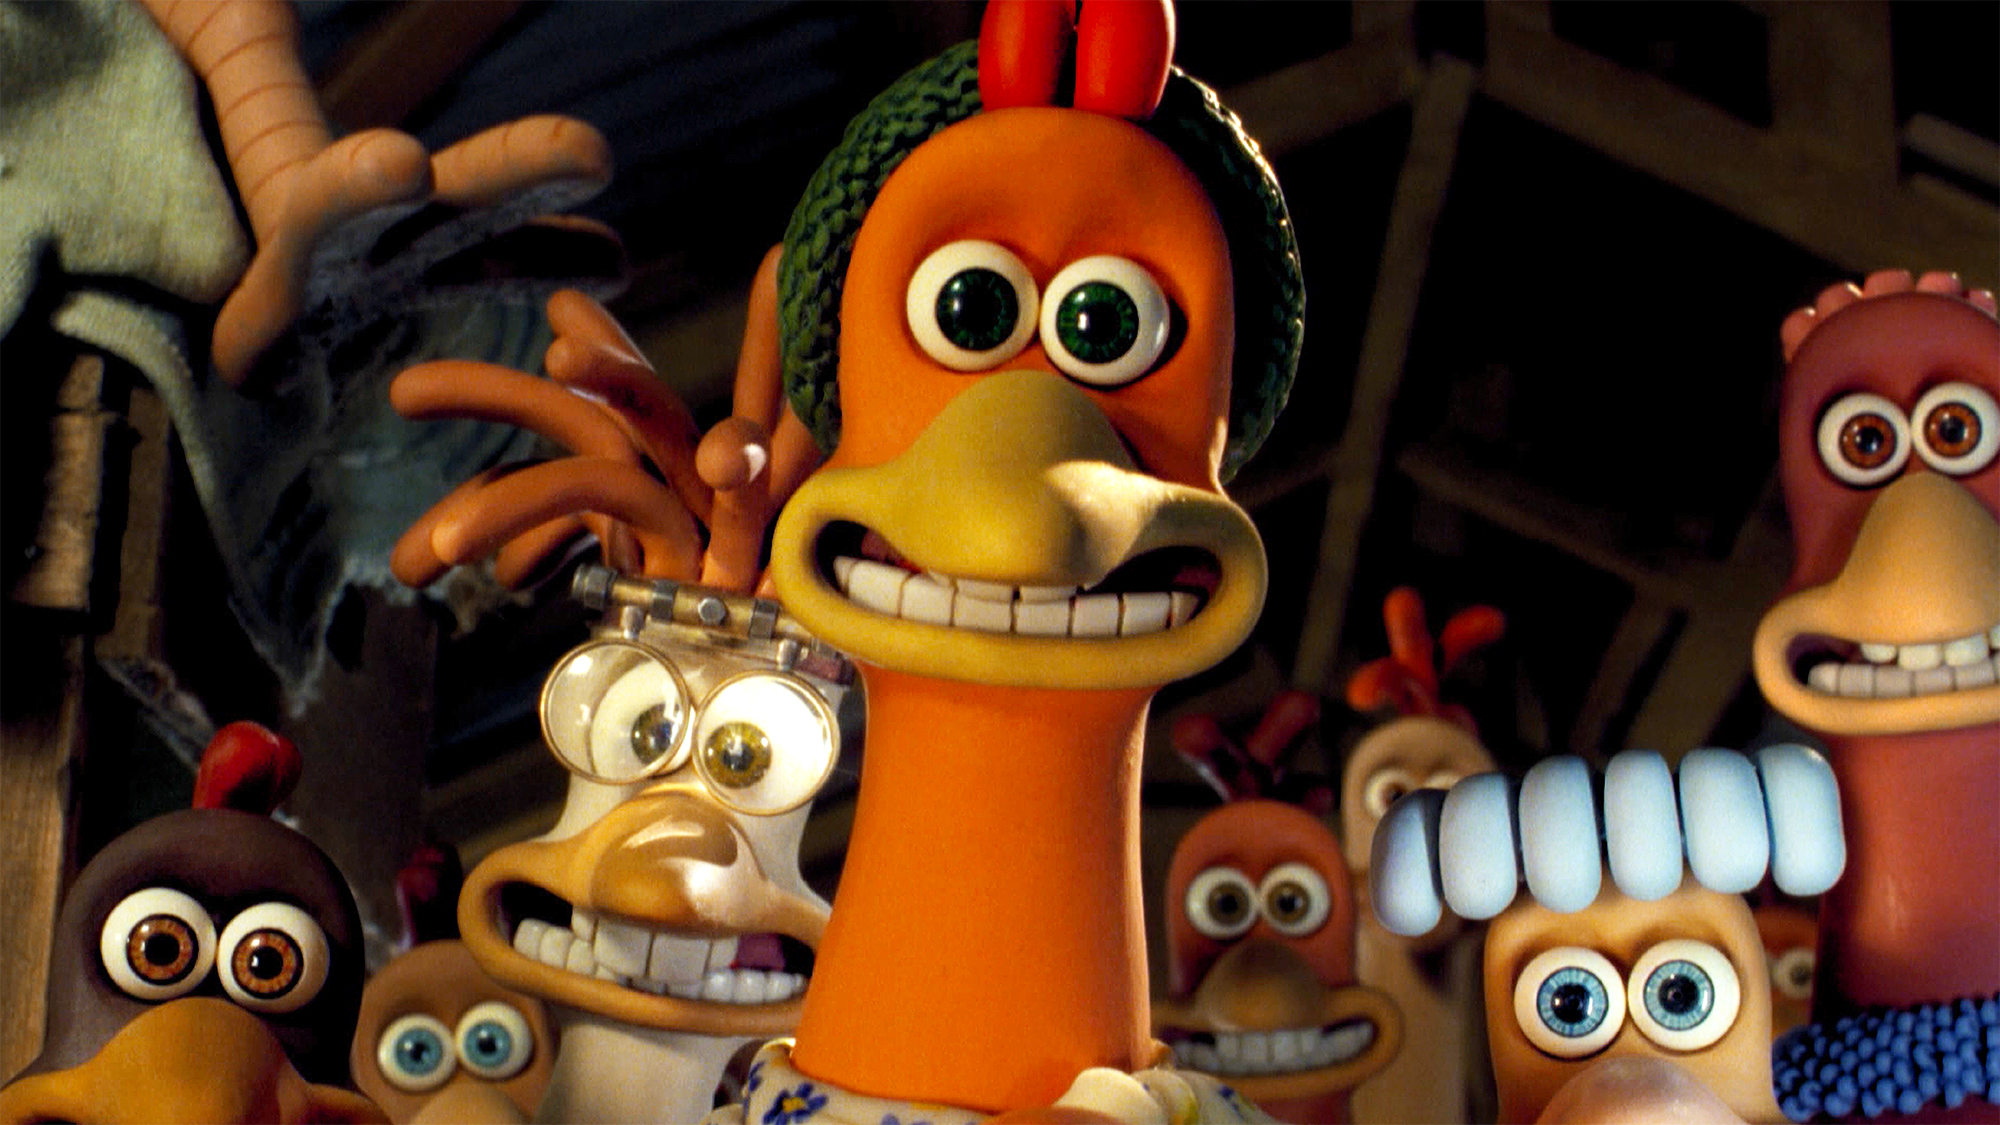 Secuela de Pollitos en fuga, Chicken Run, llegará con Netflix